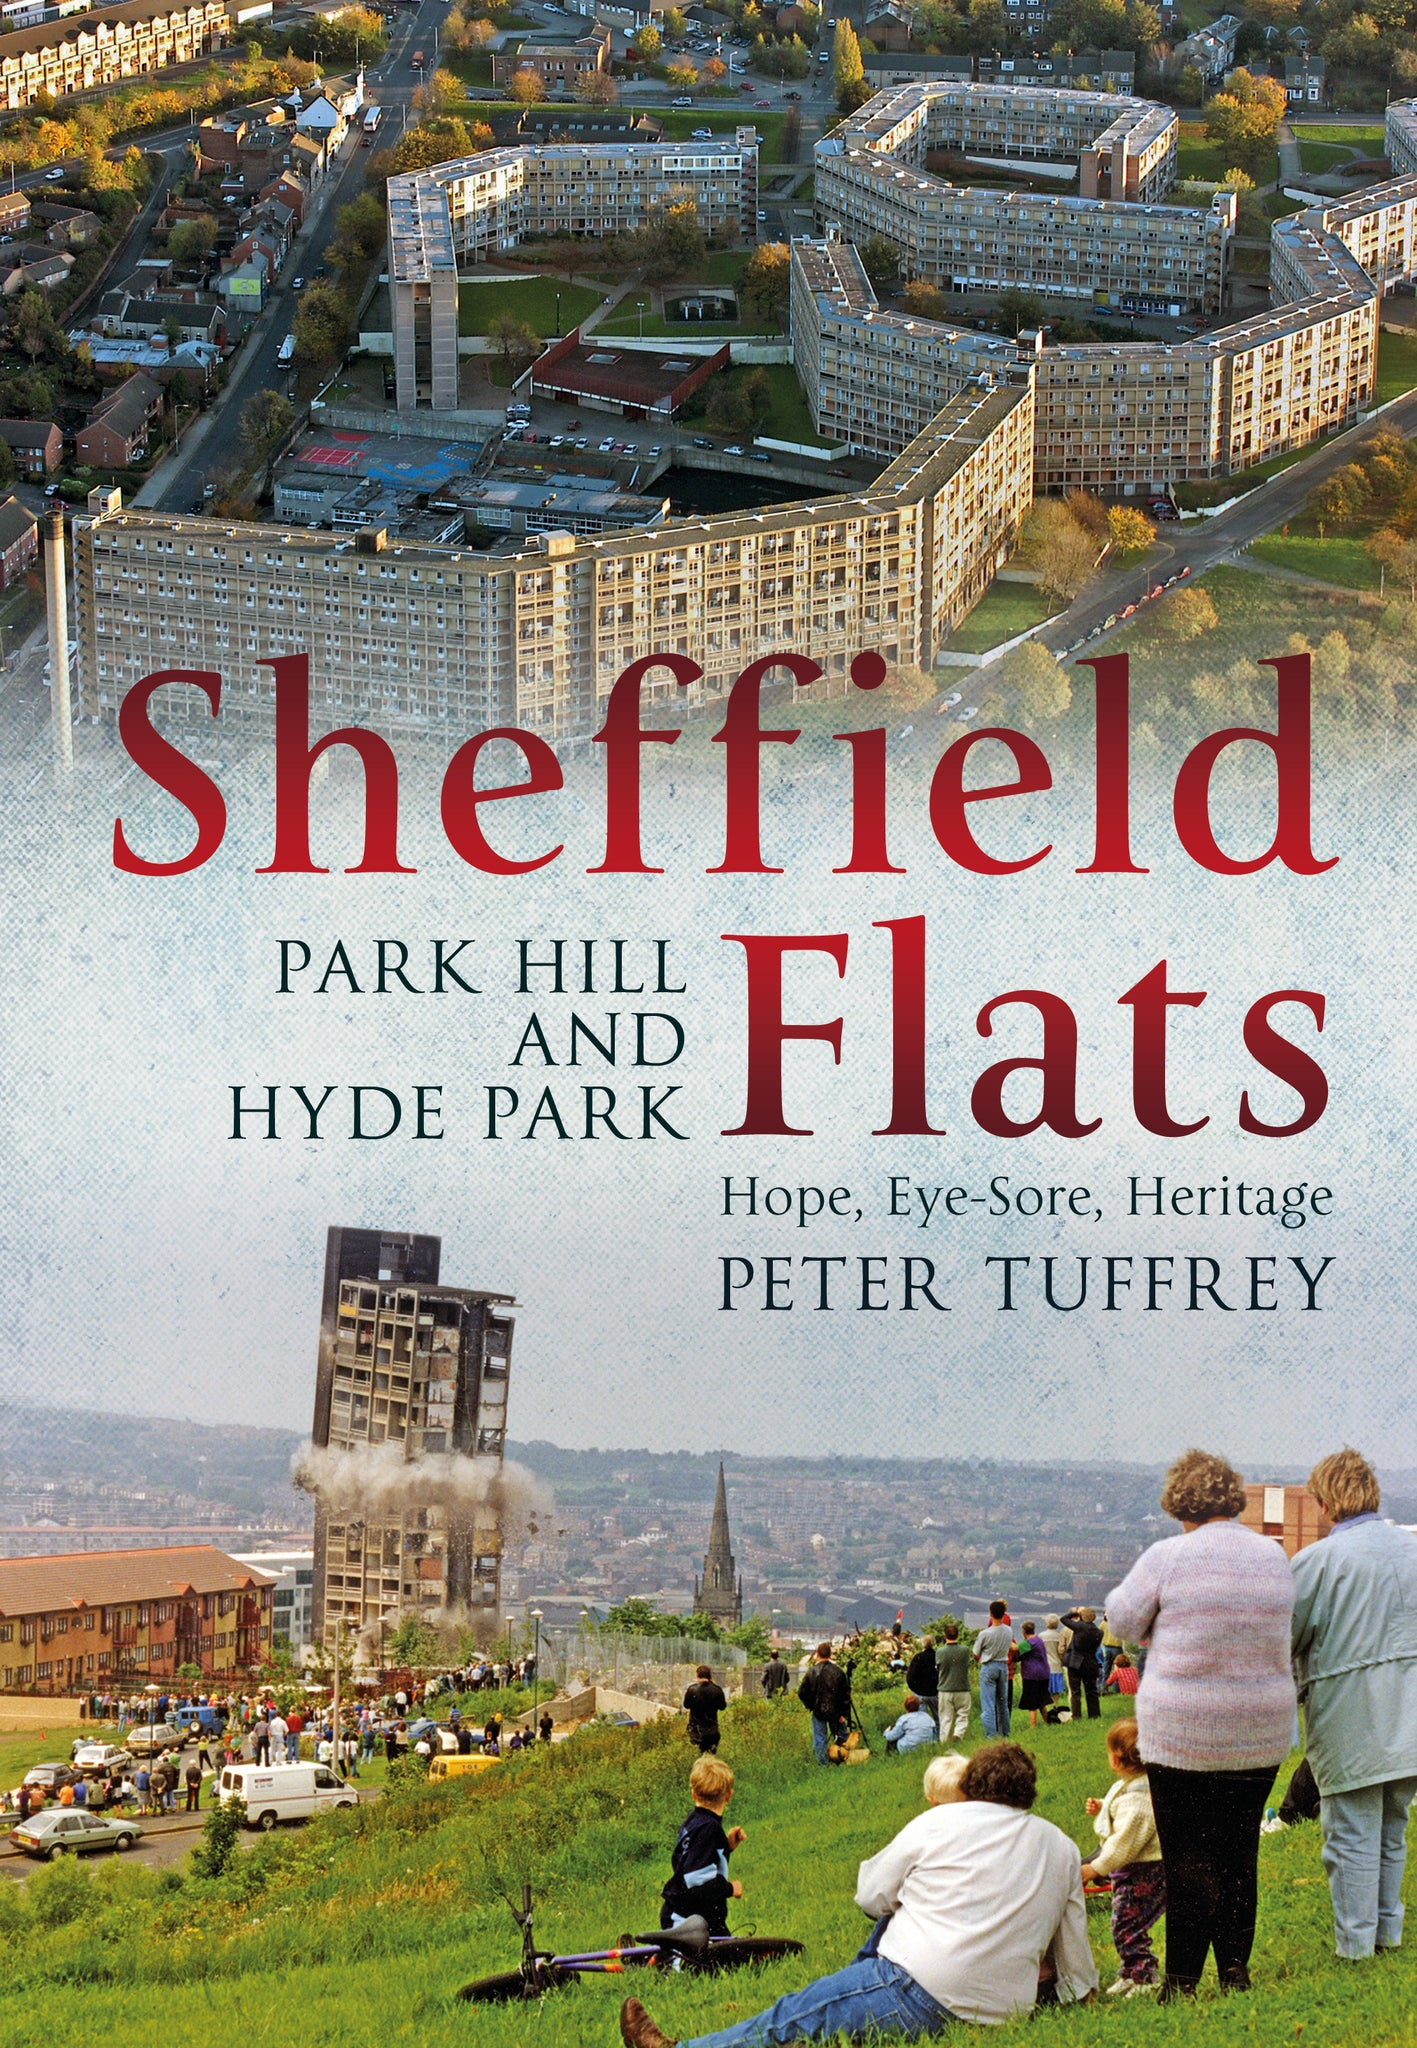 Sheffield Flats: Park Hill and Hyde Park - Hope, Eye Sore, Heritage